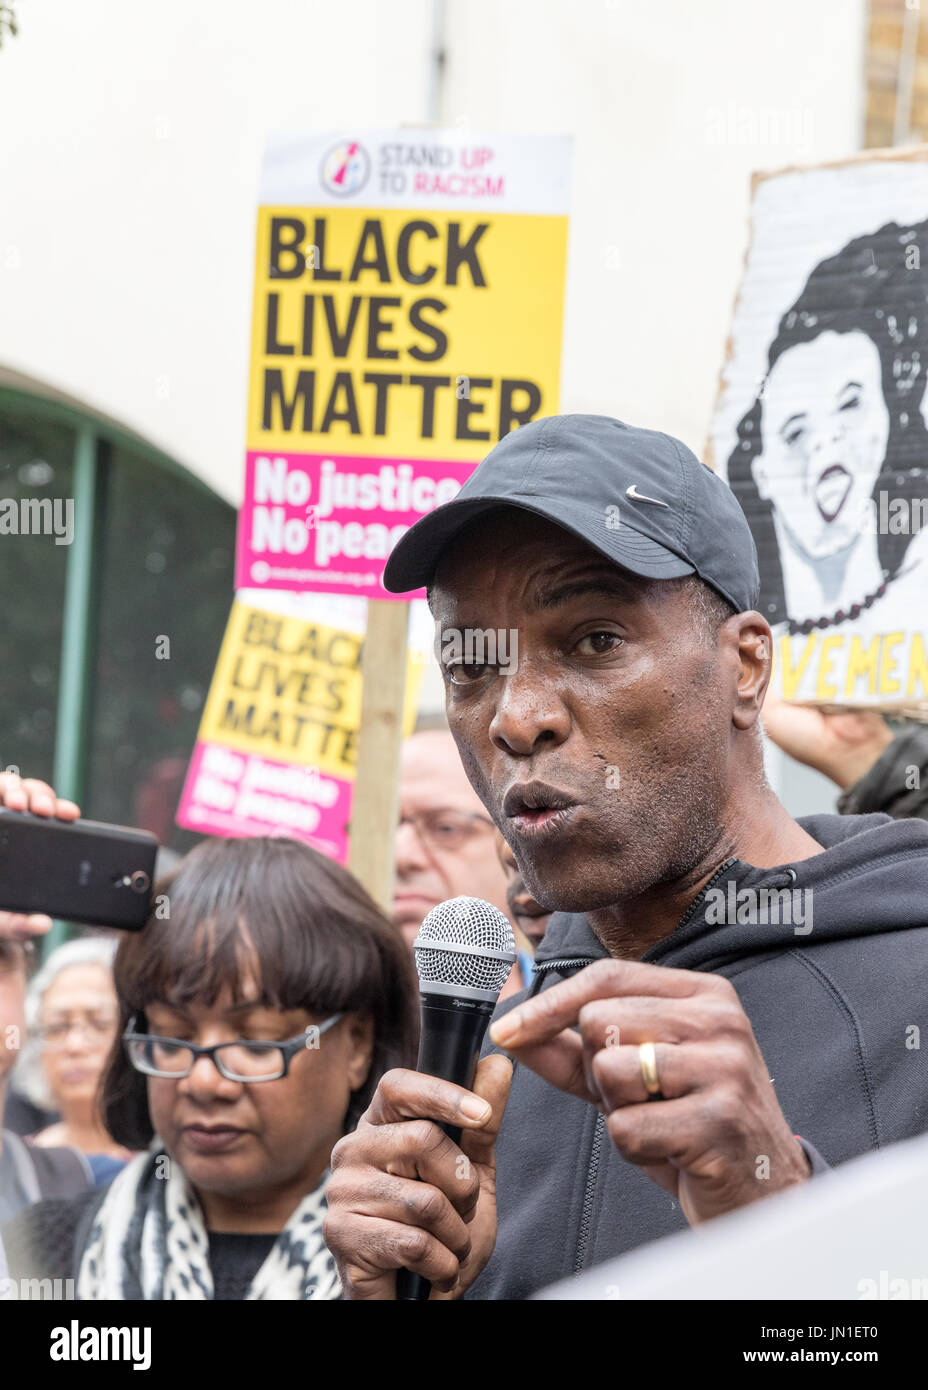 London, UK. 29th July, 2017. Vigil and protest for Rashan Charles outside Stoke Newington Police Station. The fathers of Rashan Charles and Edson da Costs and MP Diane Abbott attended. Representative of Charles Rashan's family, Stafford Scott speaks. Credit Carol Moir/Alamy Live News. - Stock Image